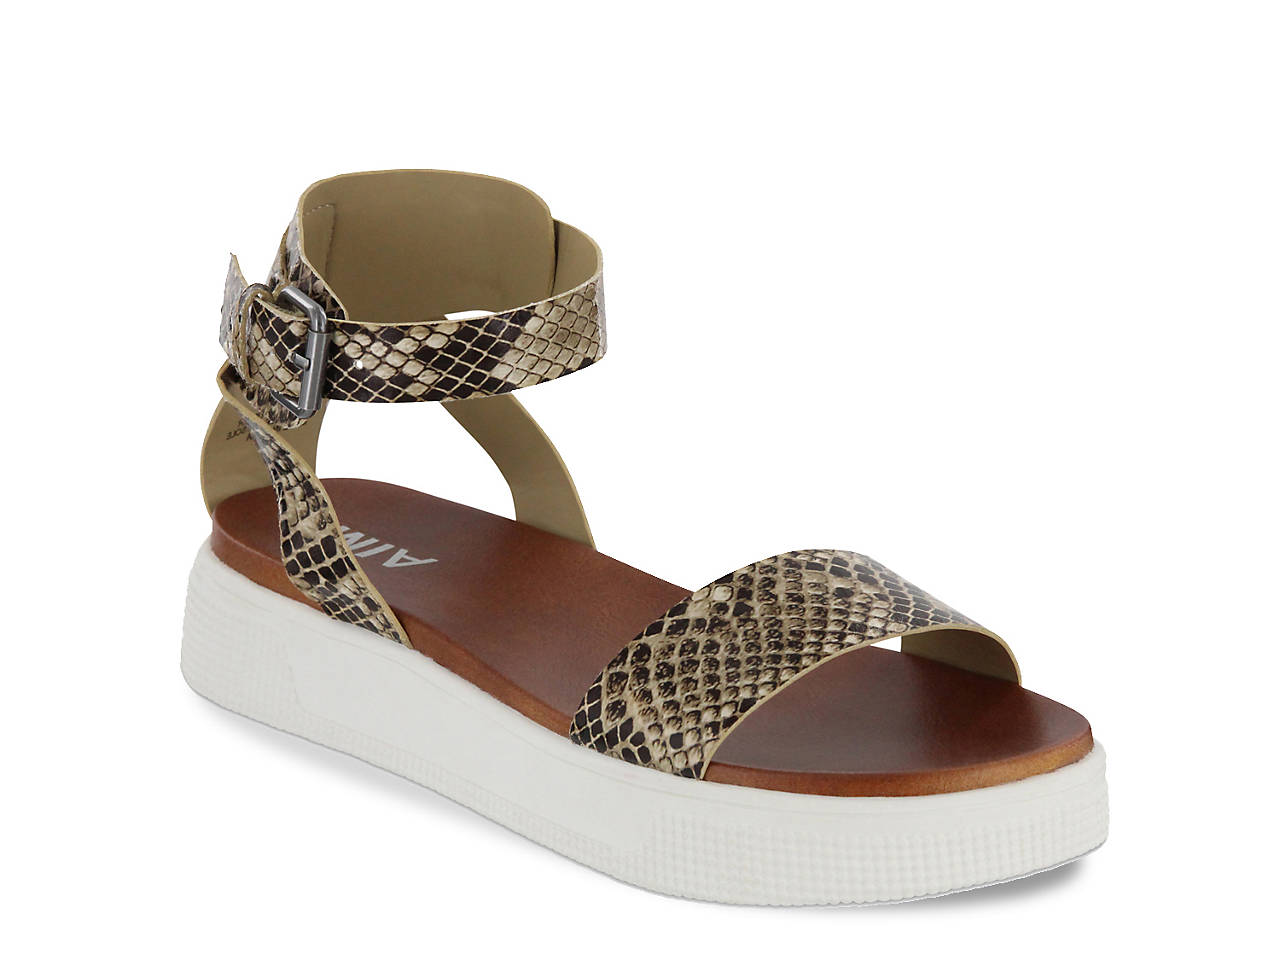 Ellen Mia Wedge ShoesDsw Sandal Women's eQdxErBoWC